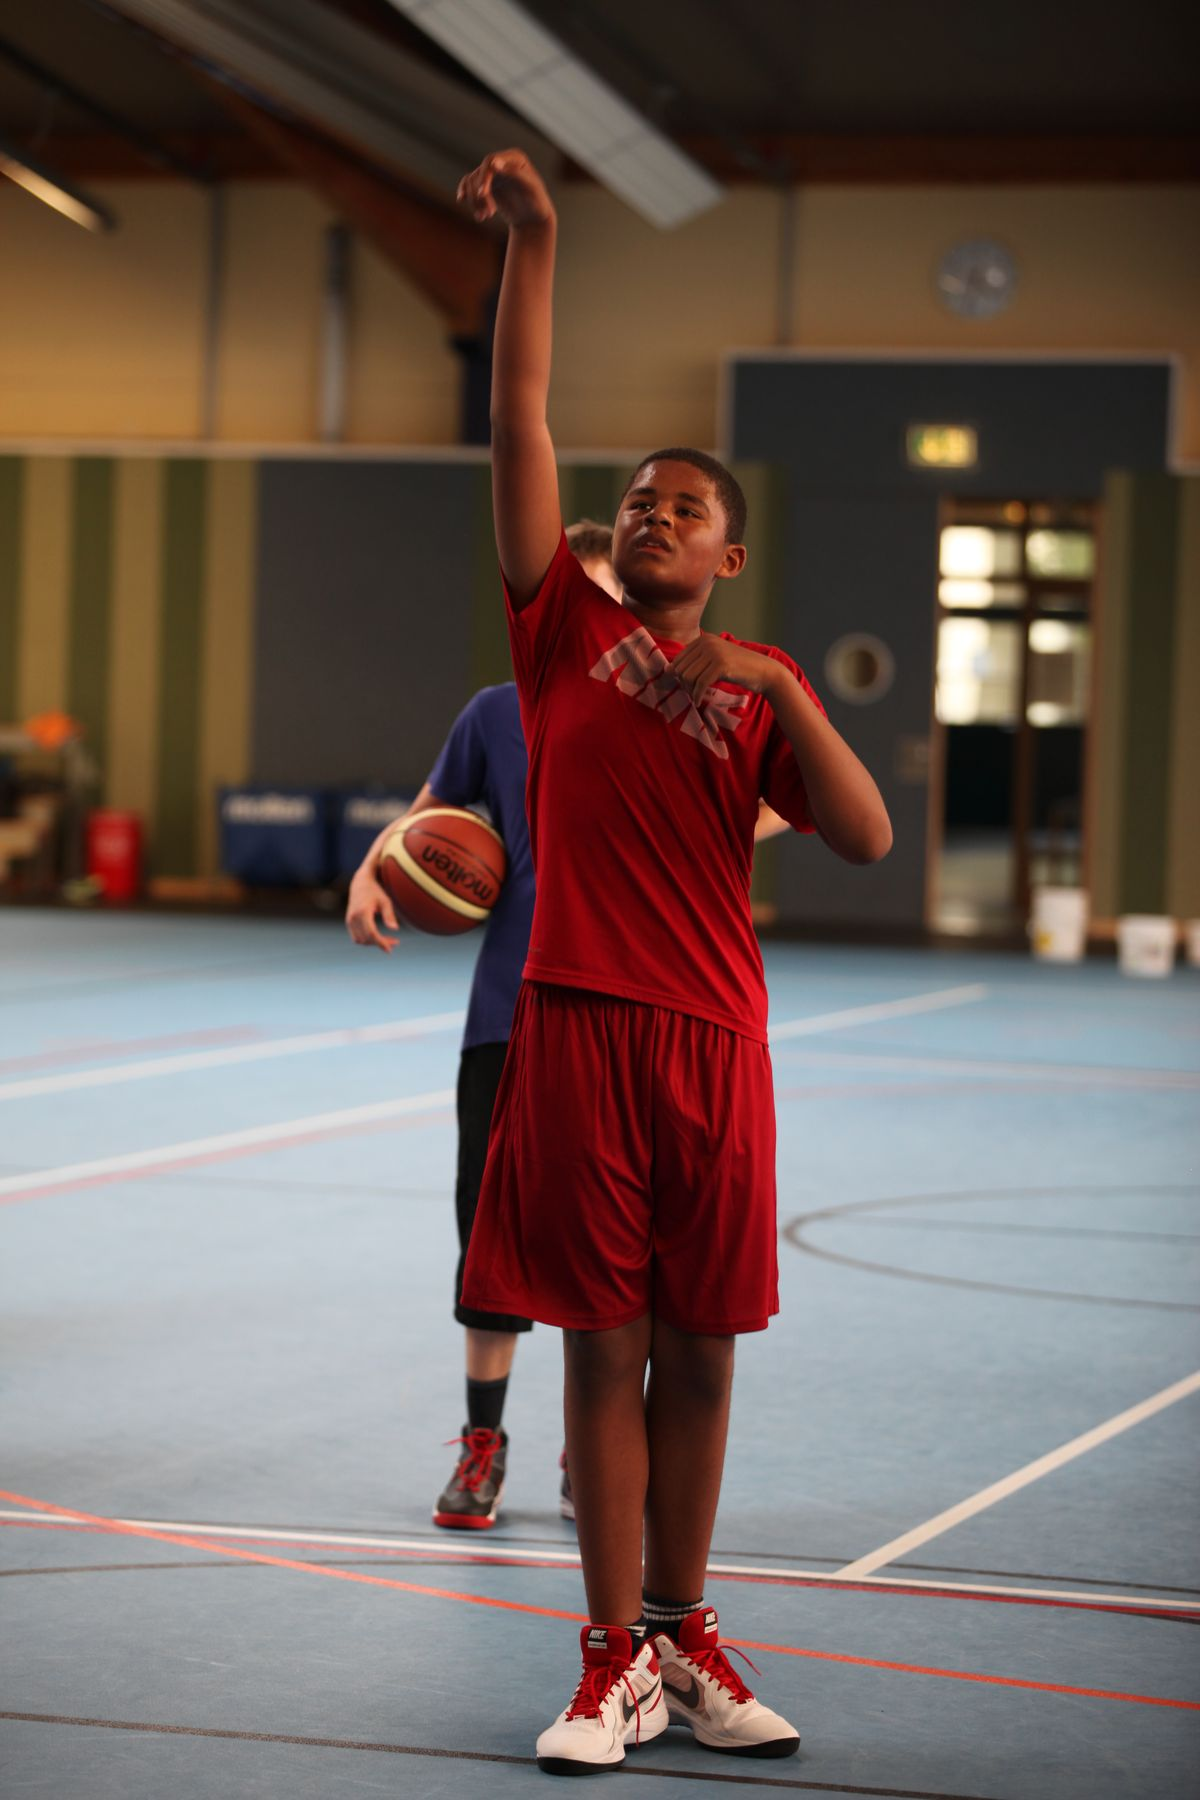 Sommer-Bball-Camp 2014_Tag 1 (47)